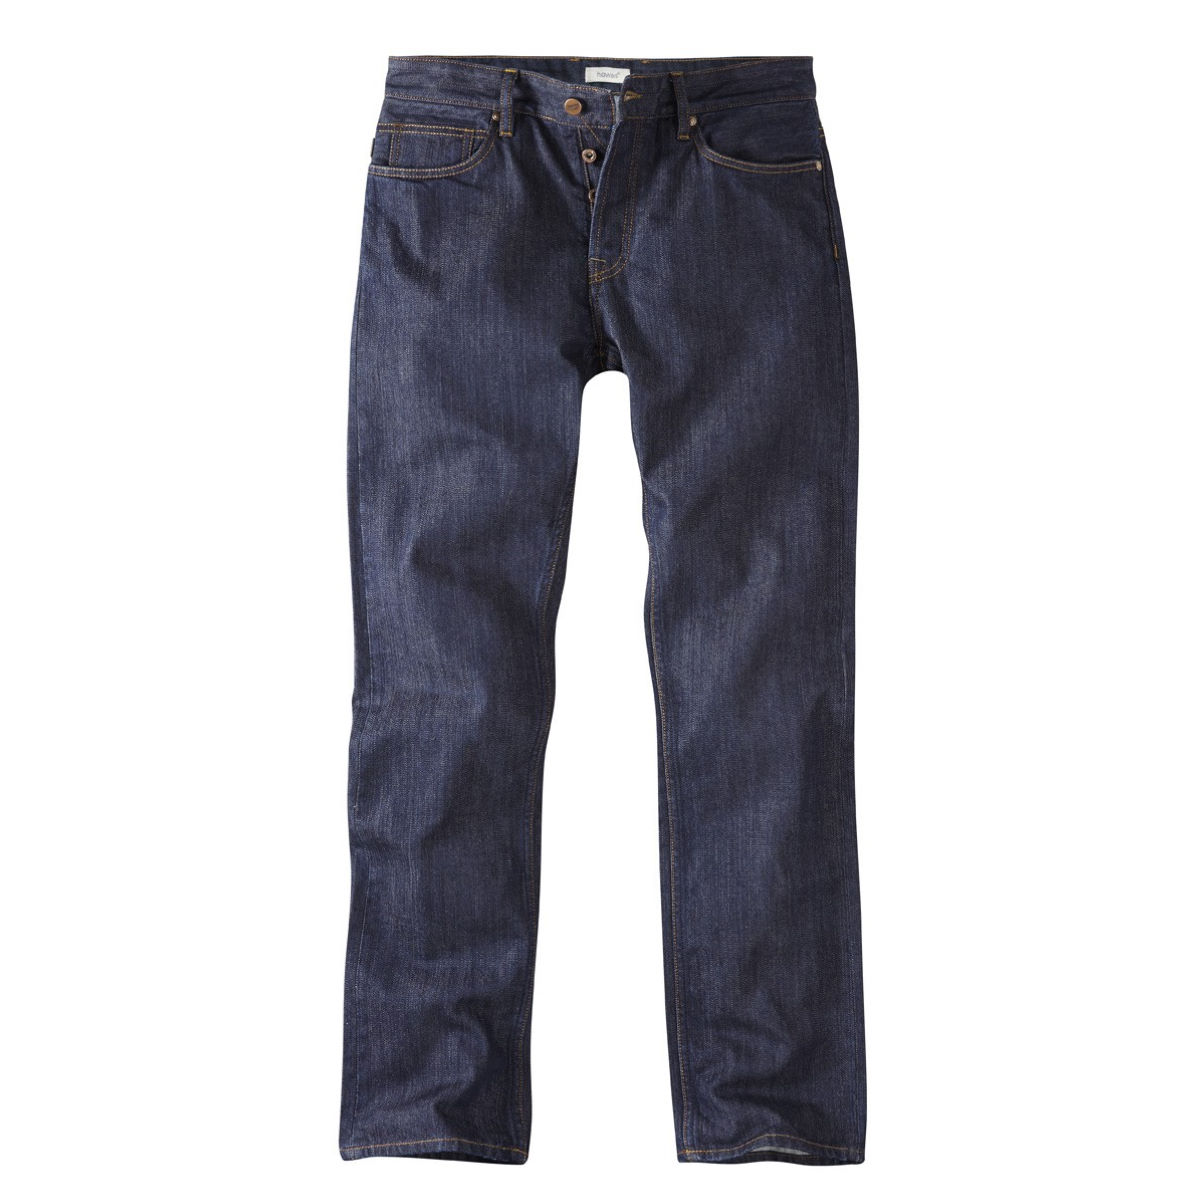 Jean howies Slim Fit Denim - 34 Denim Jeans